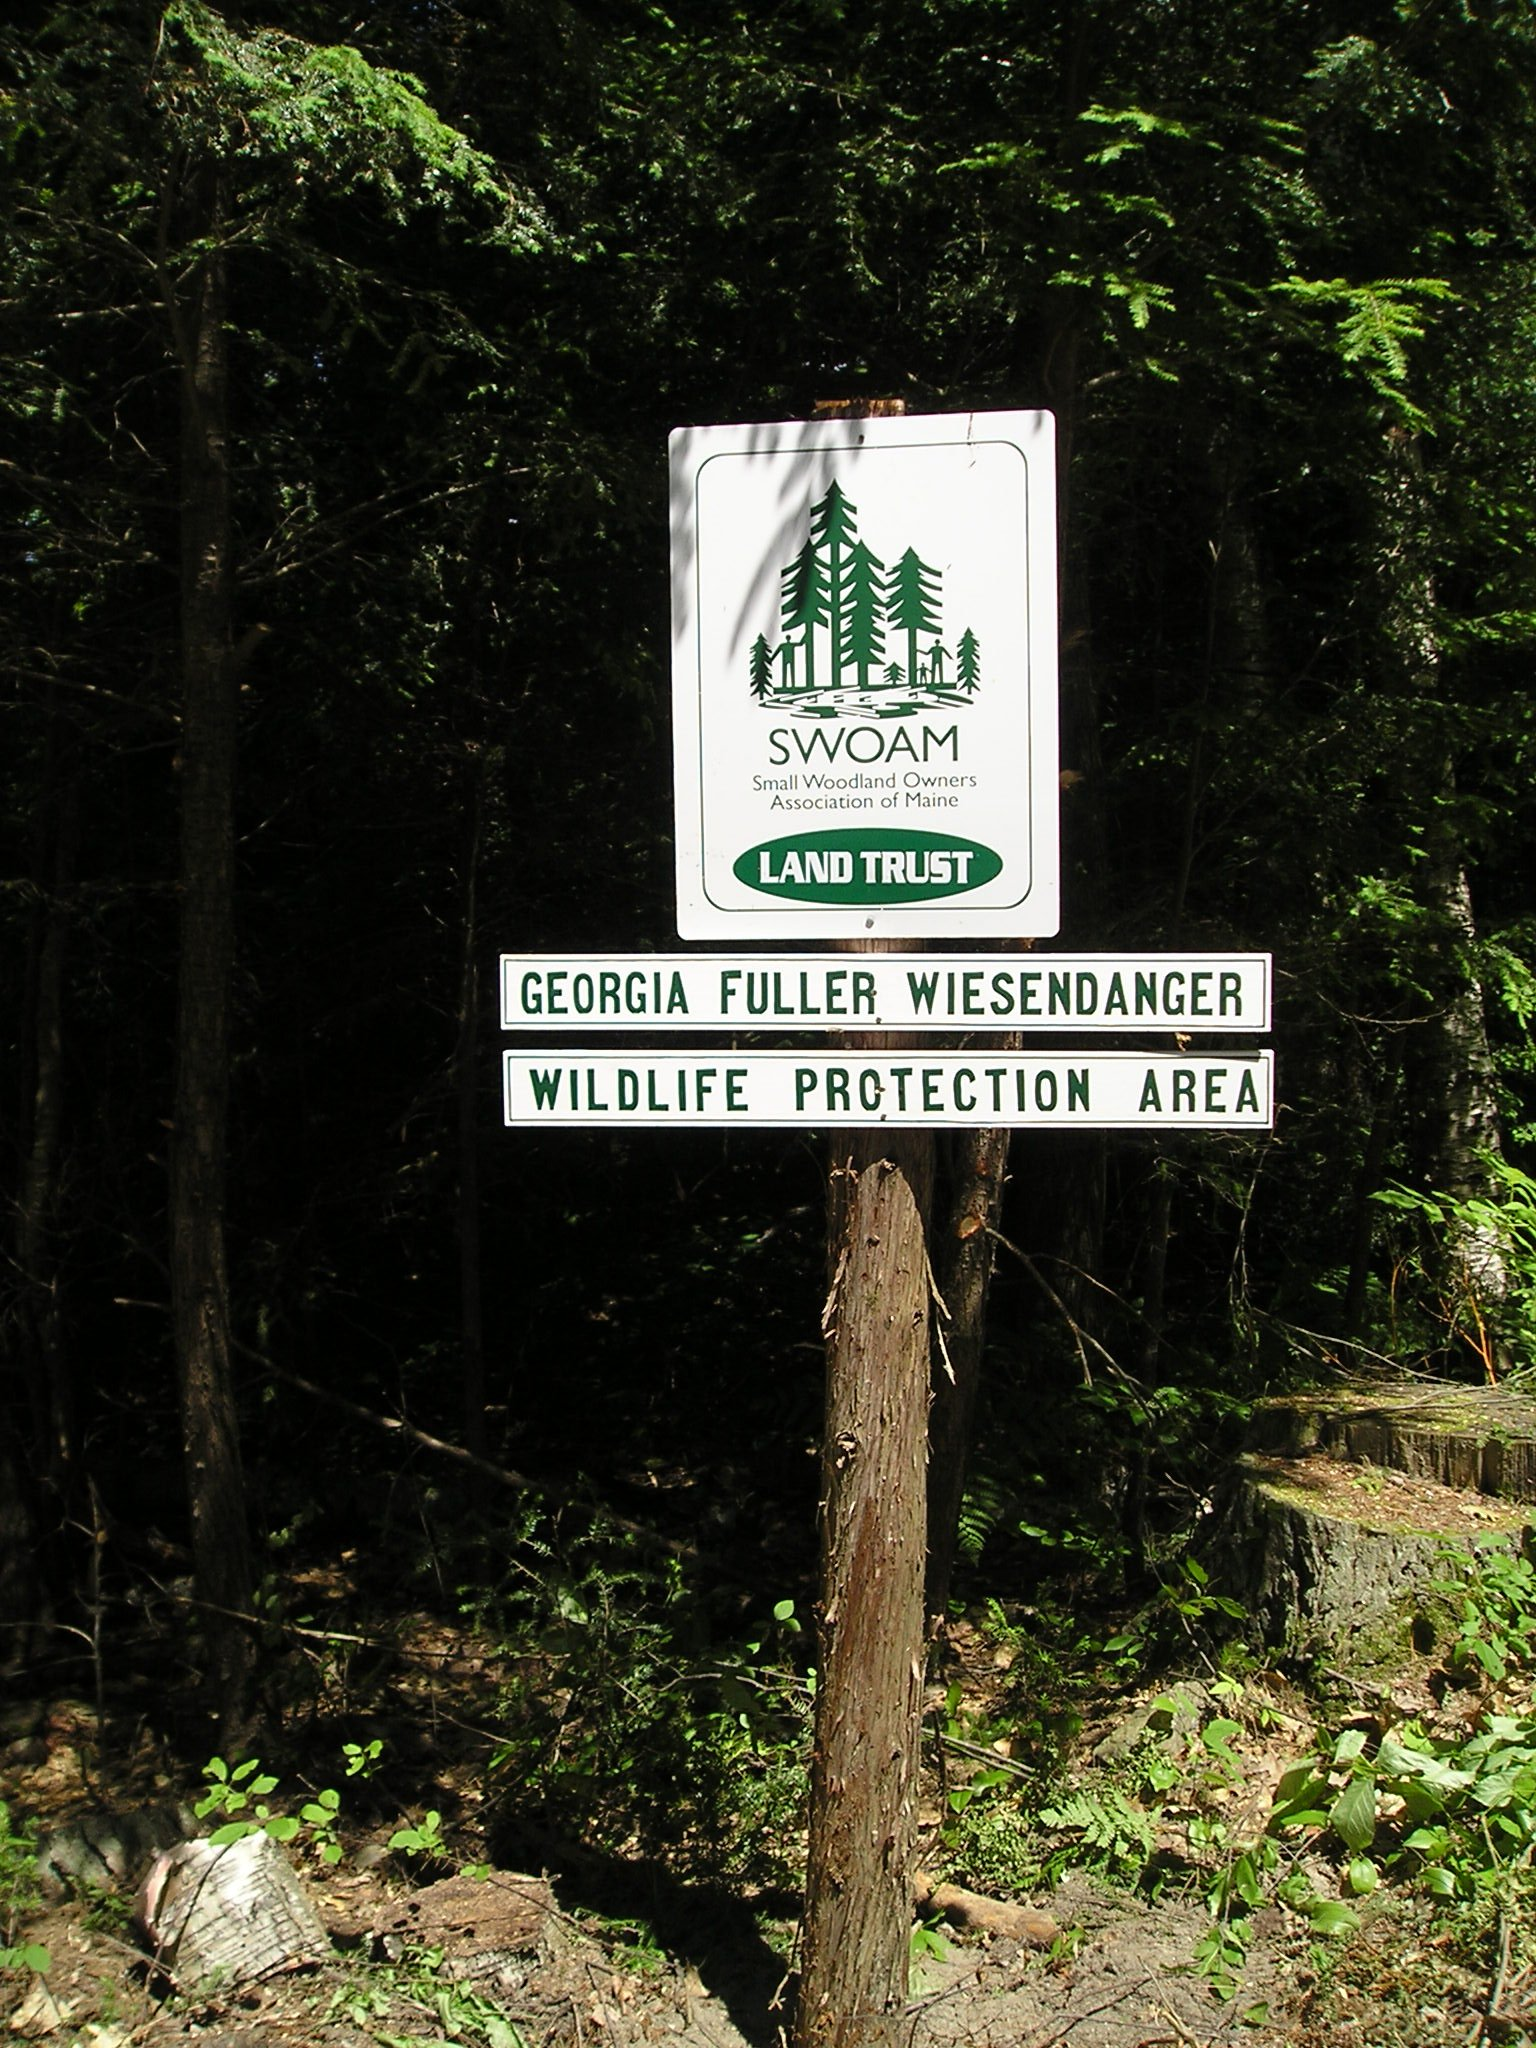 SWOAM Land Trust sign at the entrance to the Georgia Fuller Wiesendanger Wildlife Protection Area in Winthrop/Readfield.